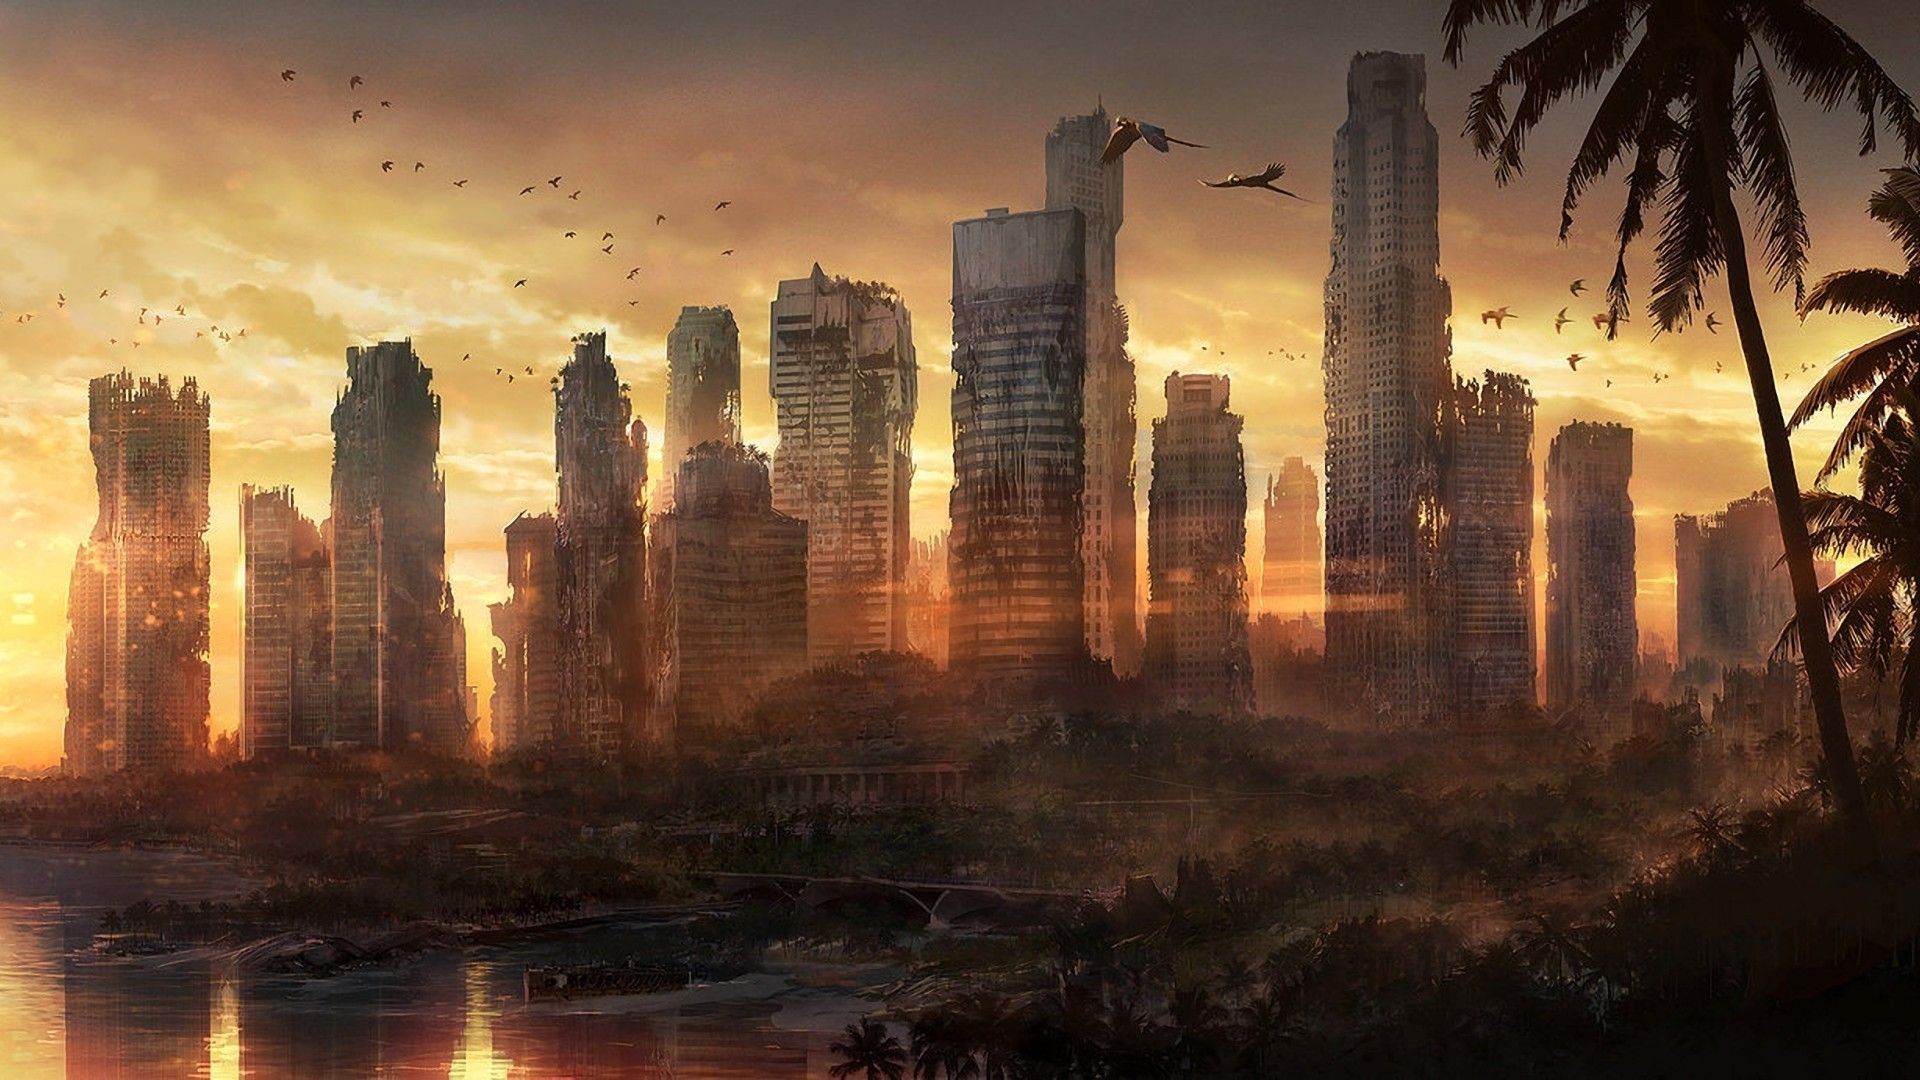 Images of Apocalyptic | 1920x1080